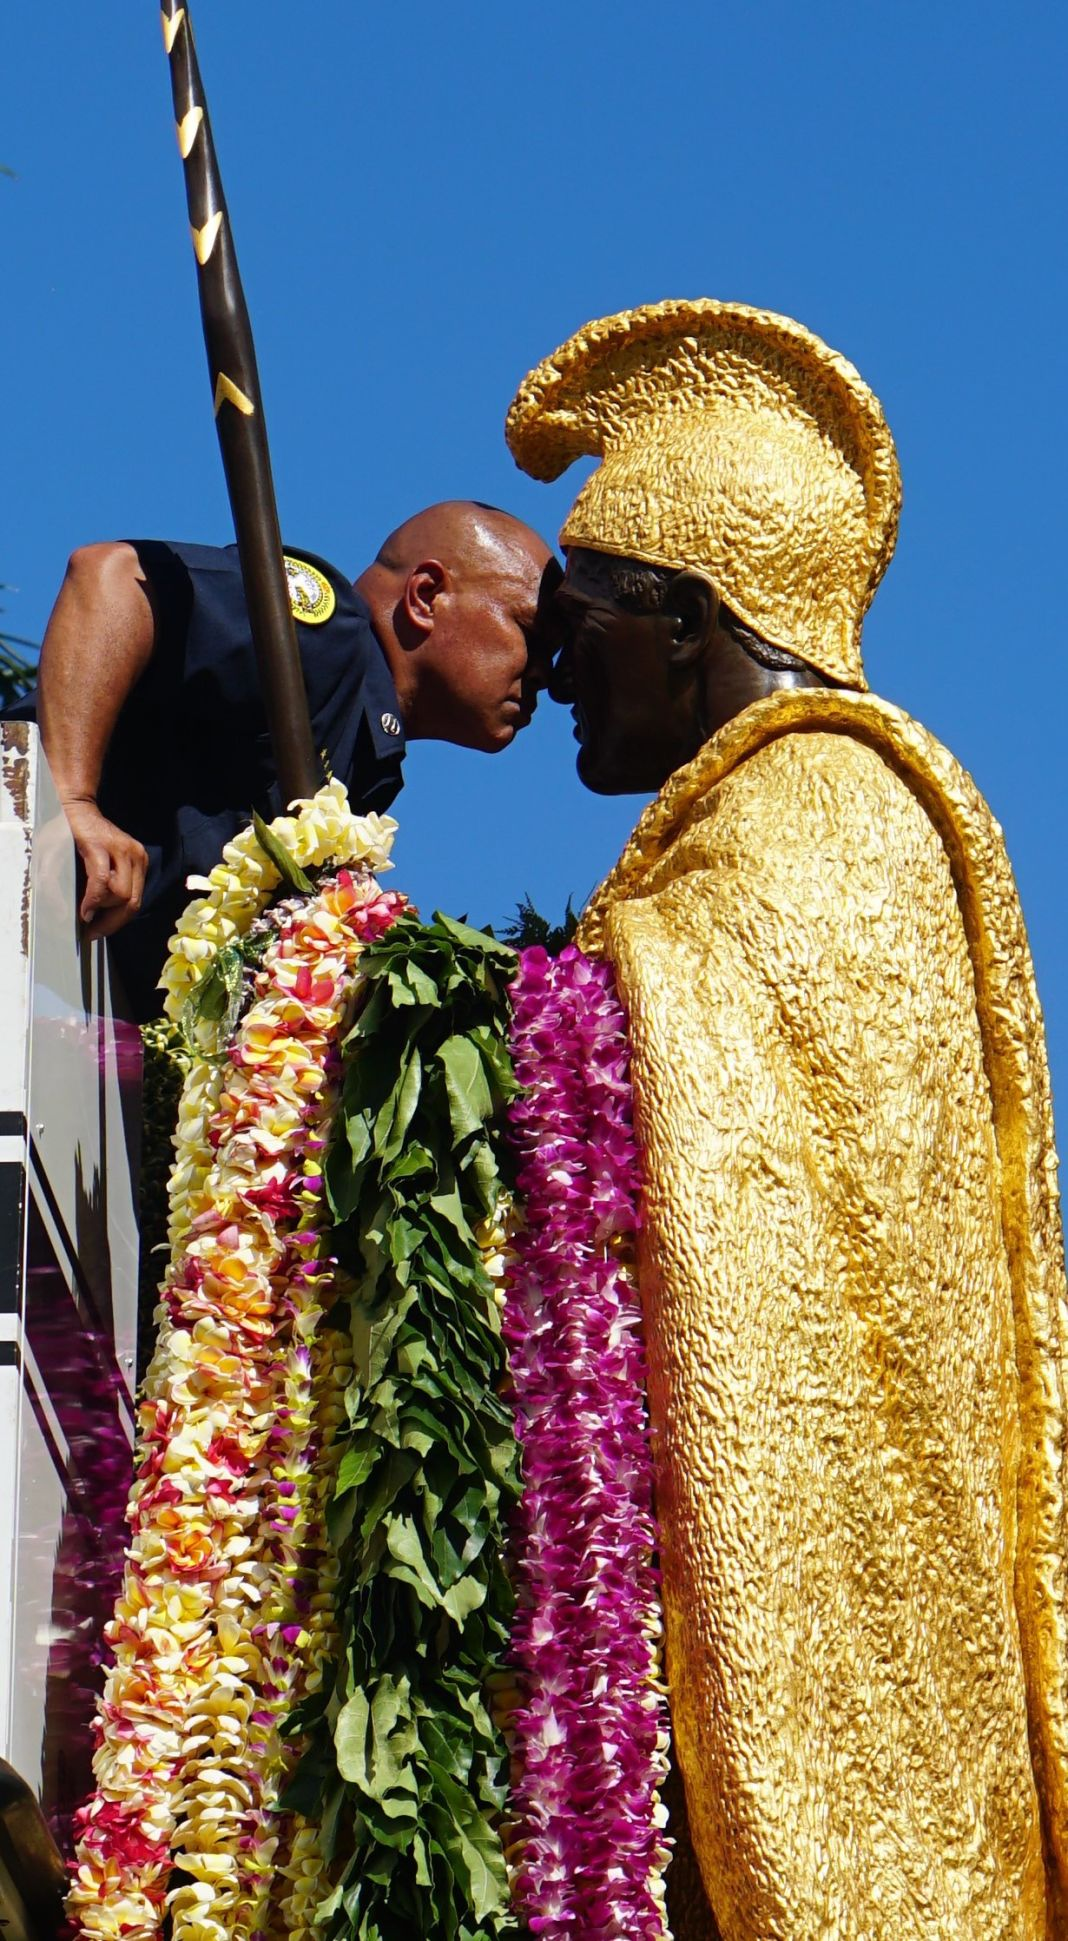 Honi between HFD Captain Ocean Kaowili and King Kamehameha